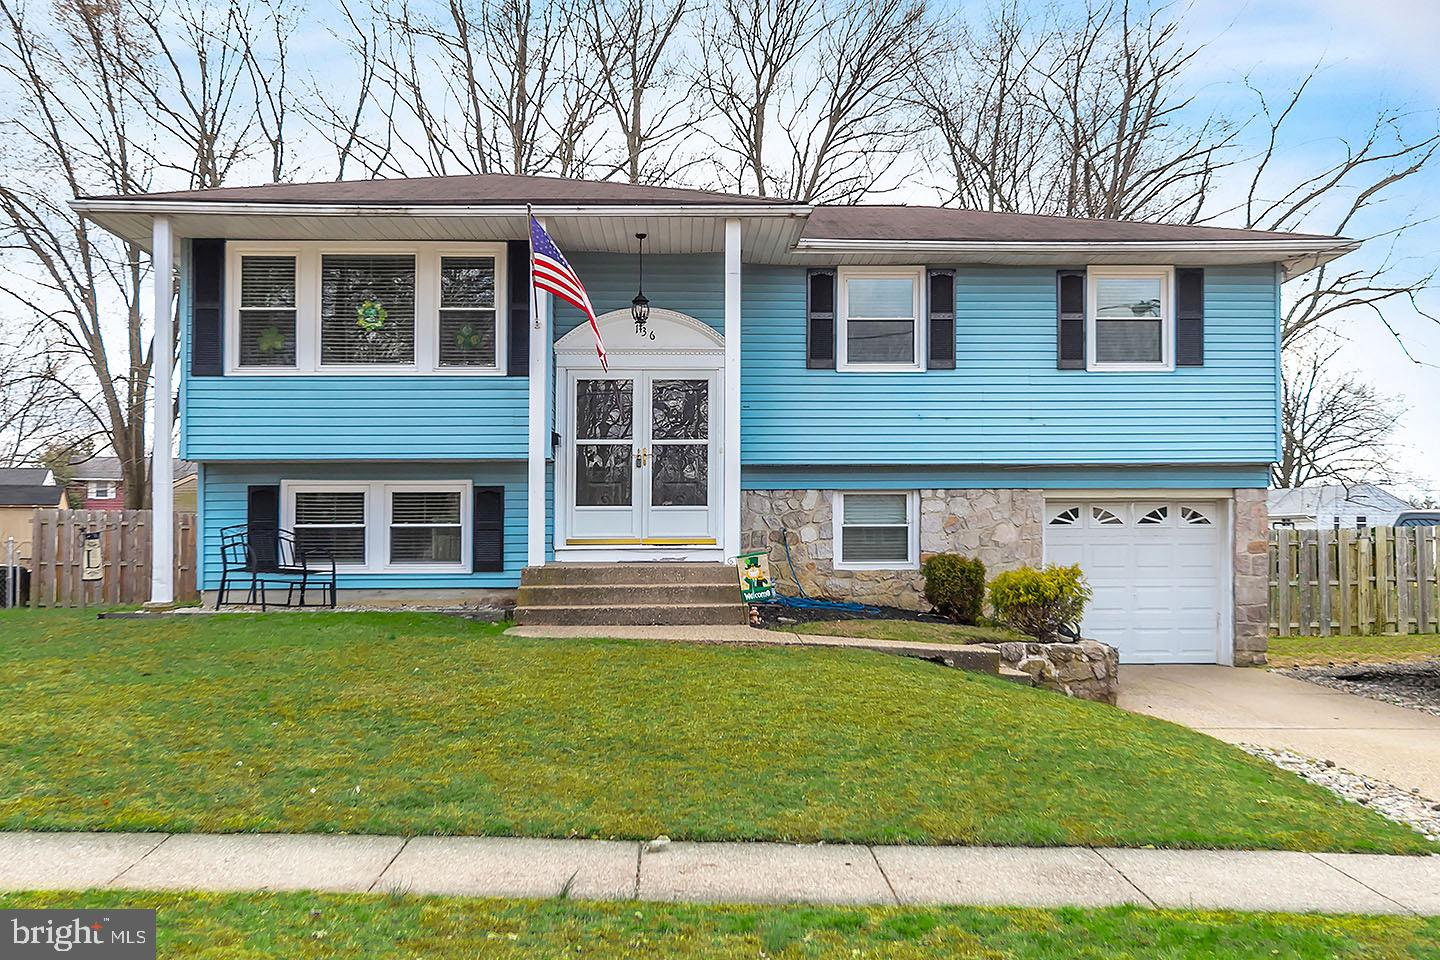 136 CENTRAL COURT, WOODBURY HEIGHTS, NJ 08097